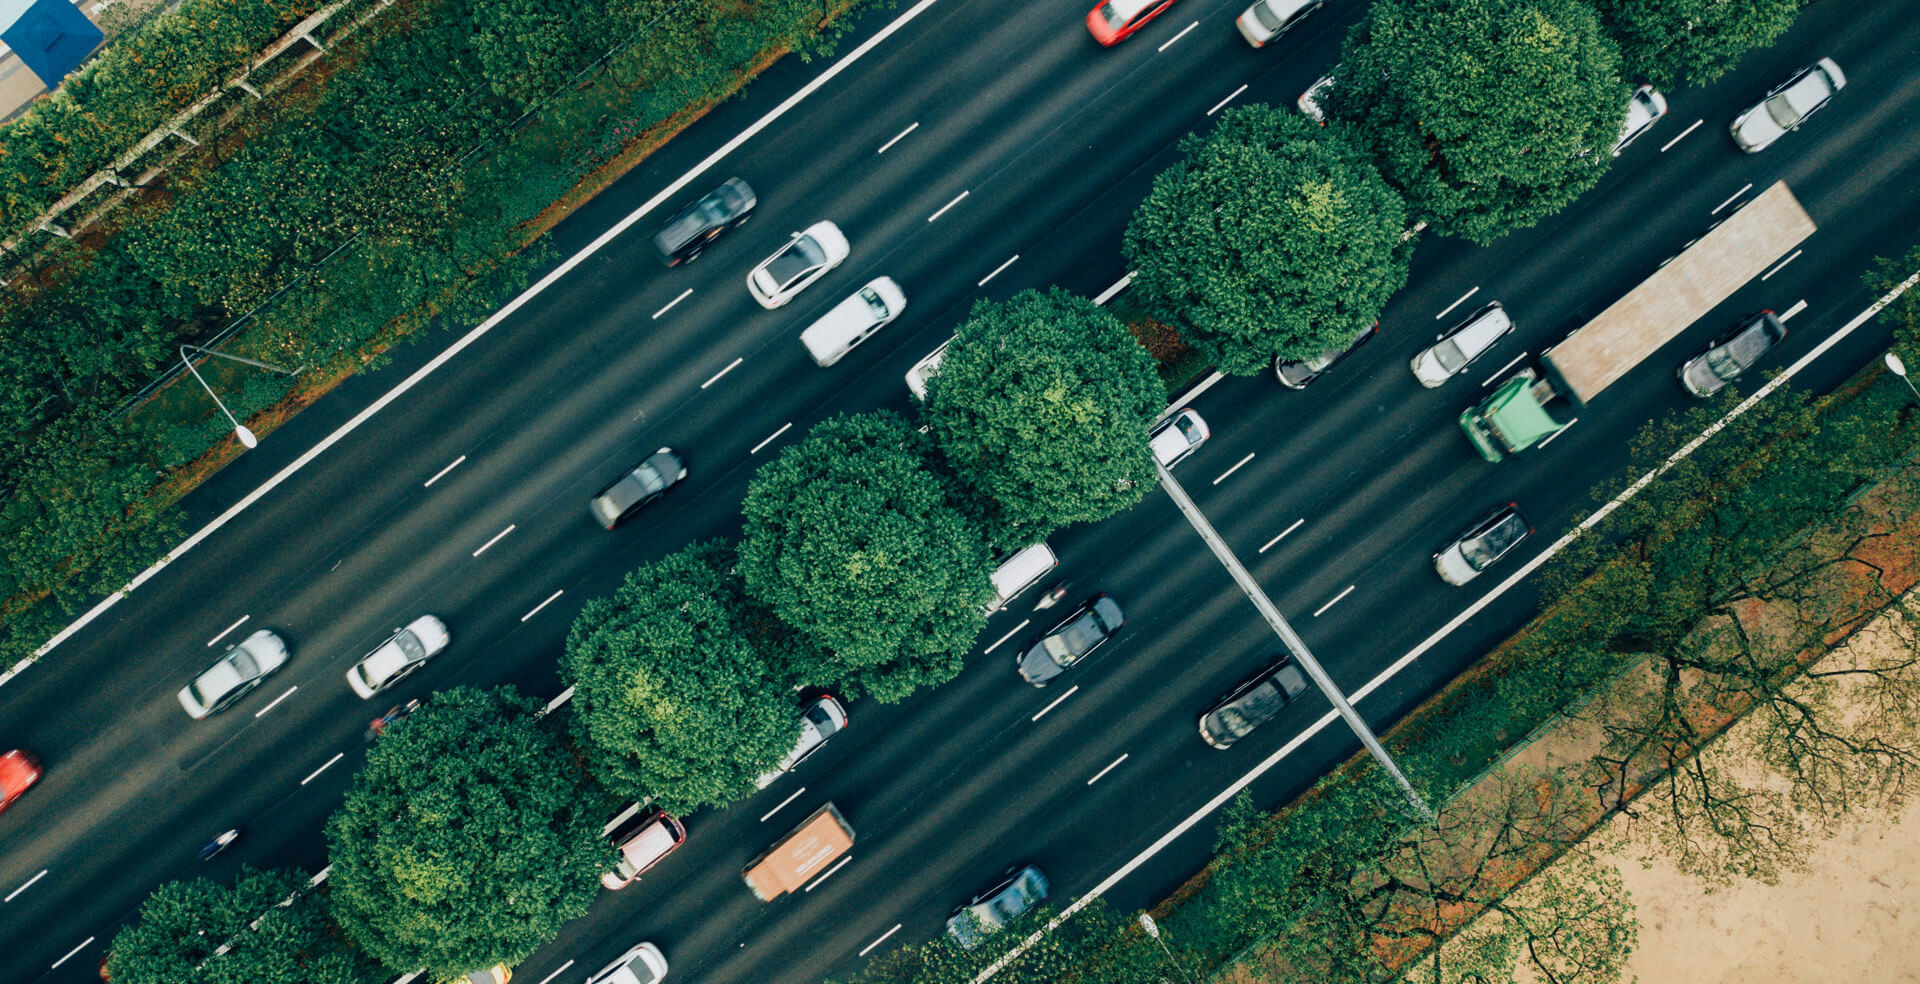 road traffic as seen from above